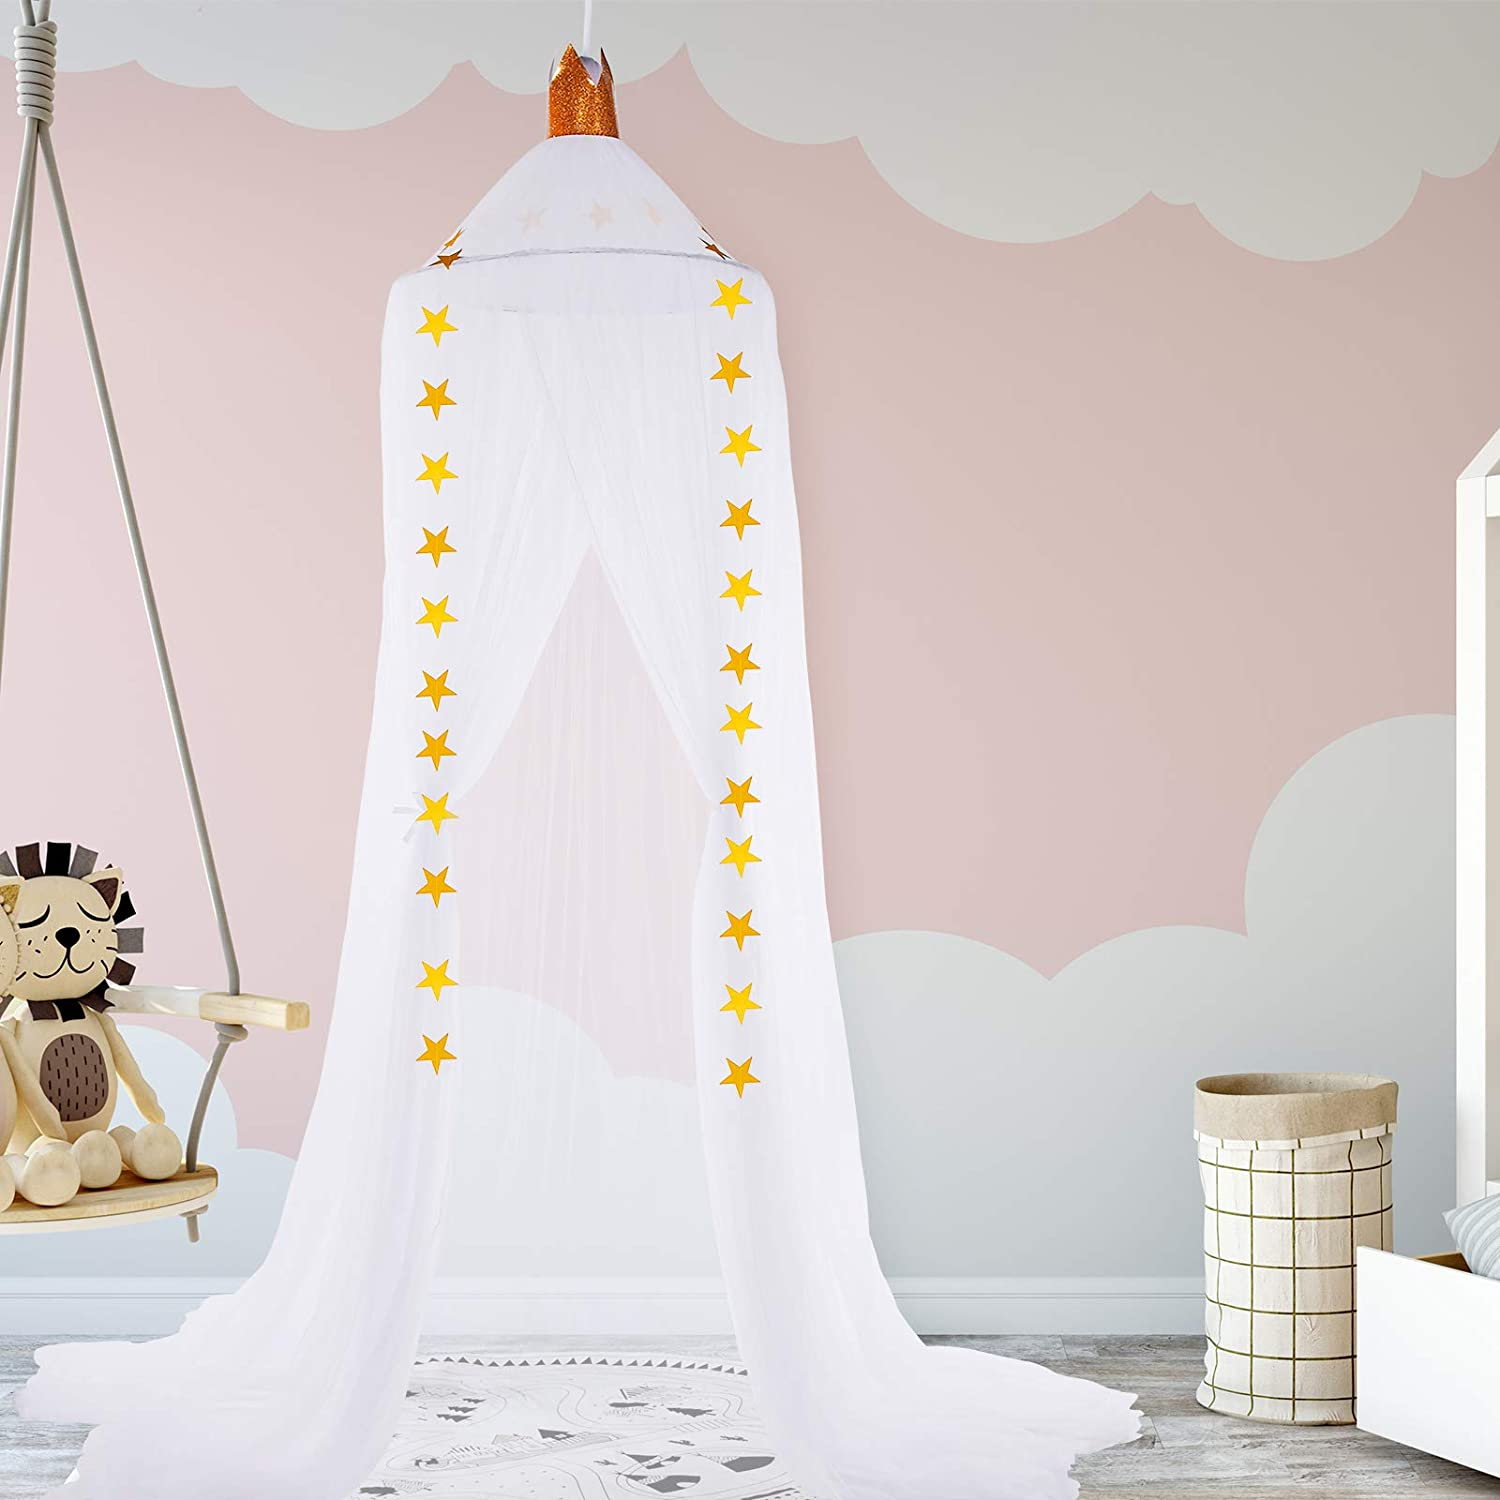 Kids Bed Canopy Crib Canopy Stars Round Dome Hanging Mosquito Net Curtains Baby Crib Game Tent Nursery Play Room Indoor Outdoor Children Toddler Reading House Nook Decoration (White)